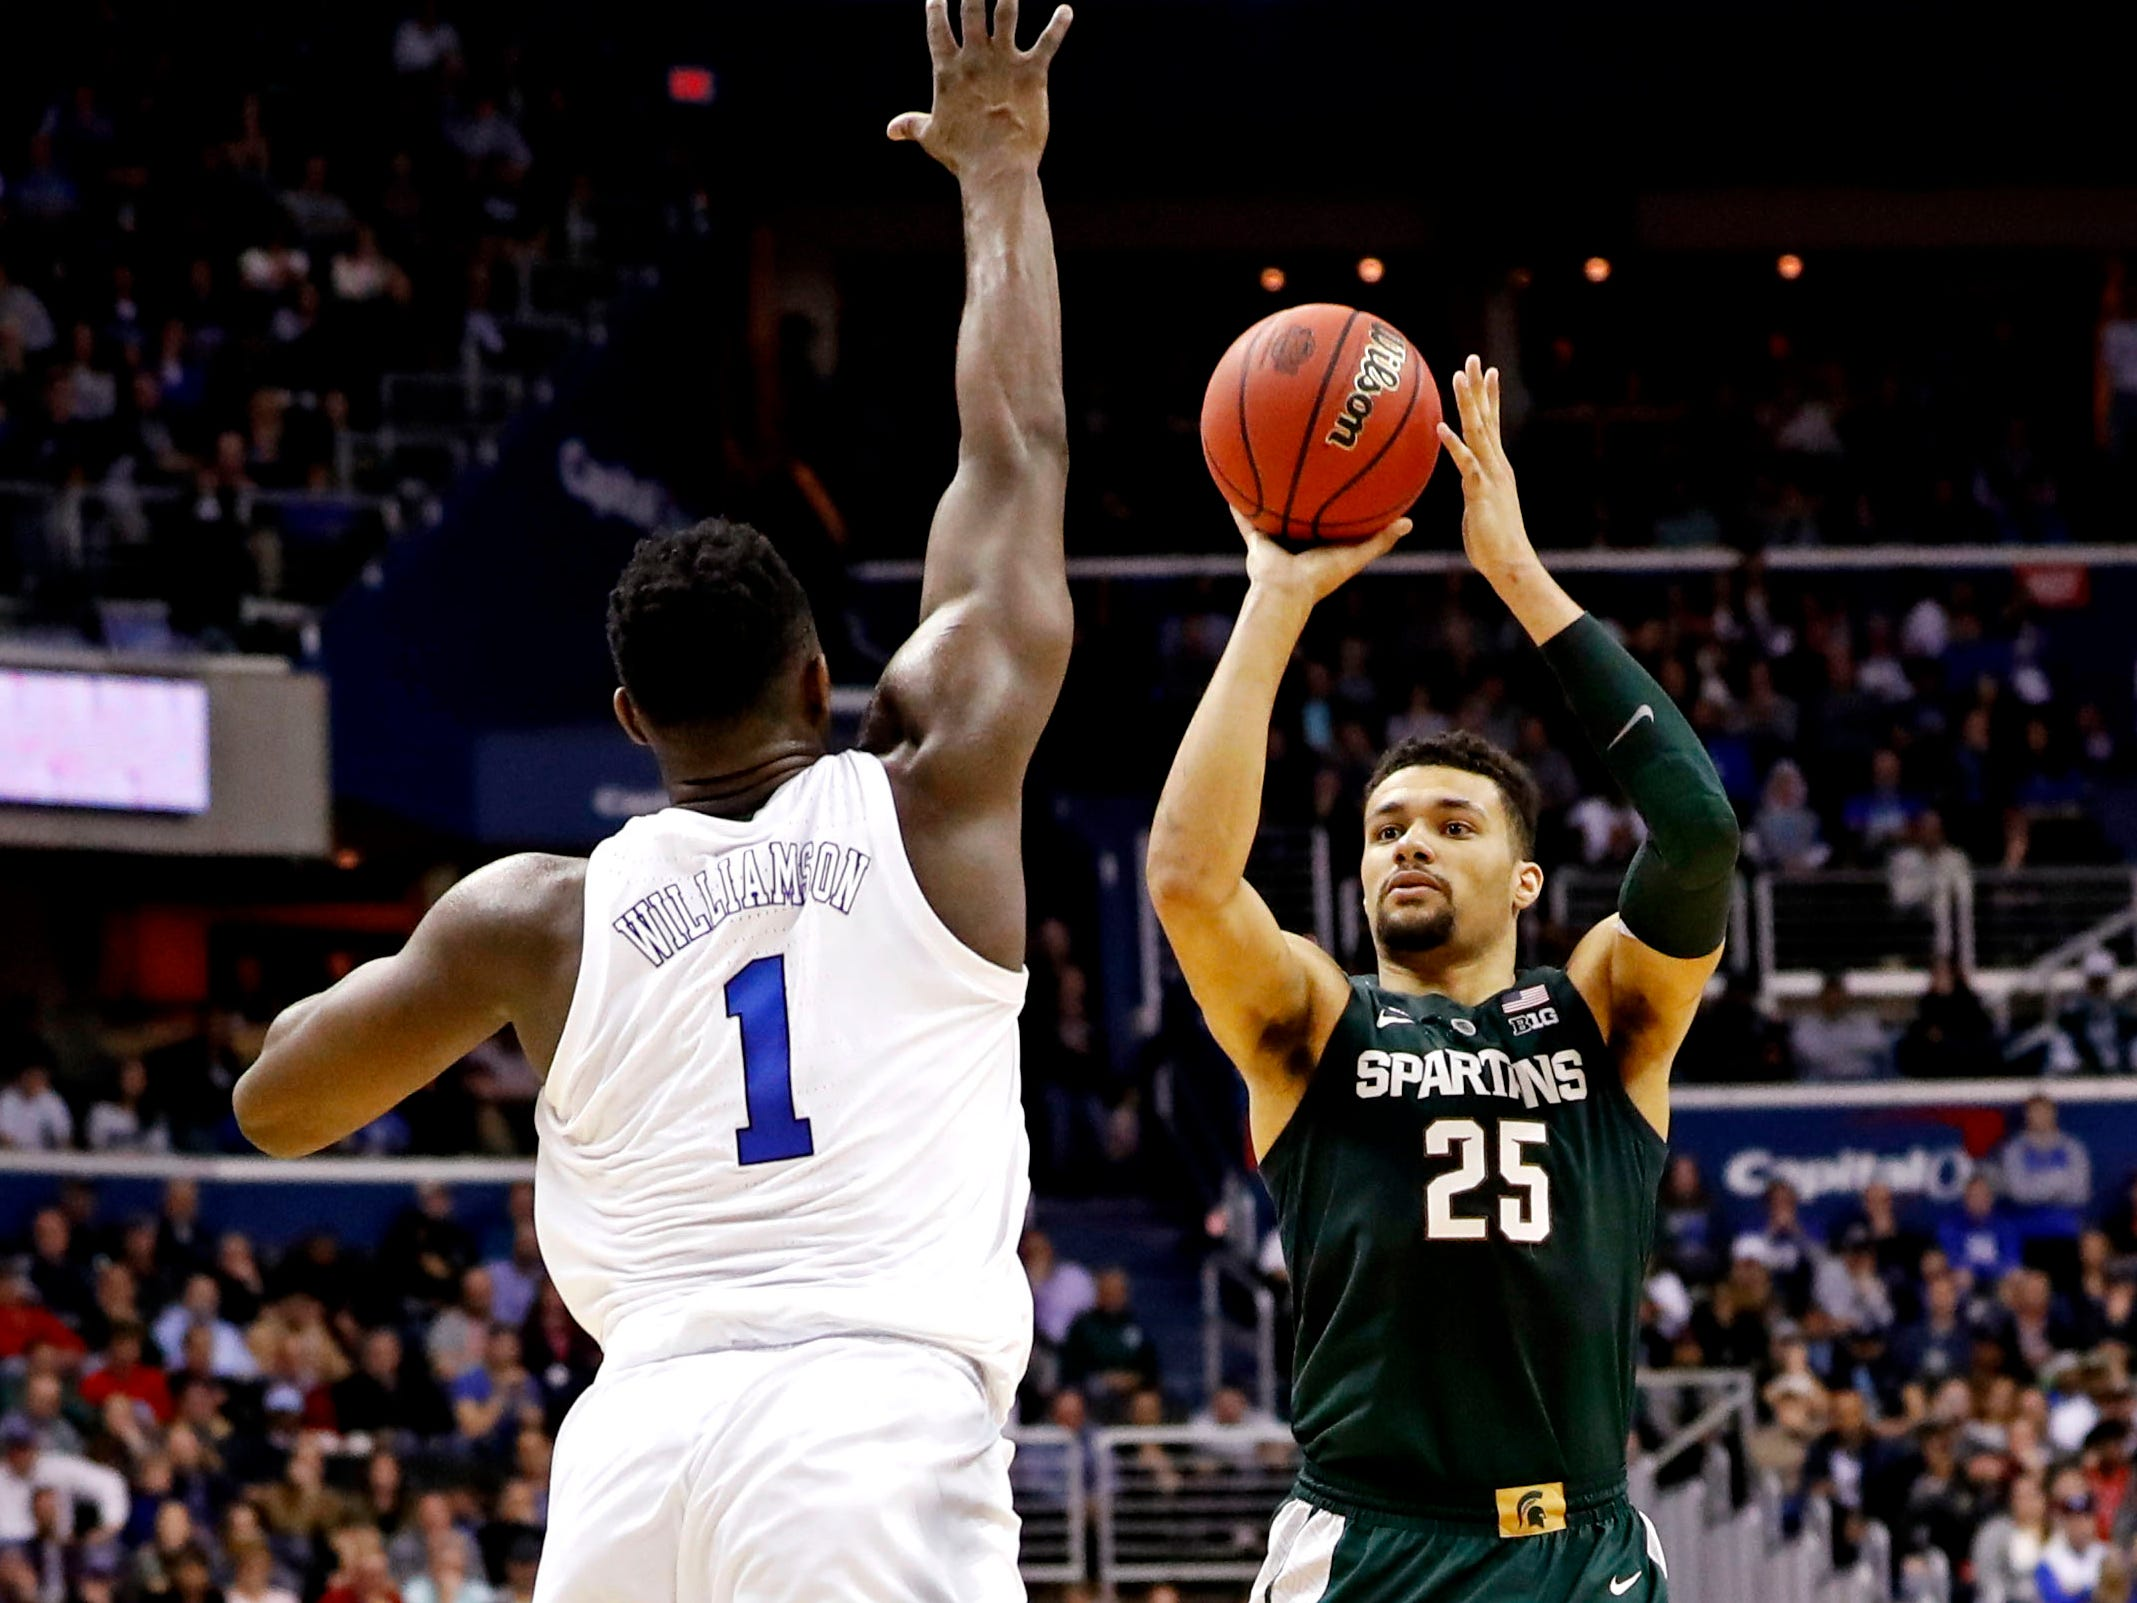 Mar 31, 2019; Washington, DC, USA; Michigan State Spartans forward Kenny Goins (25) shoots the ball against Duke Blue Devils forward Zion Williamson (1) during the second half in the championship game of the east regional of the 2019 NCAA Tournament at Capital One Arena. Mandatory Credit: Geoff Burke-USA TODAY Sports